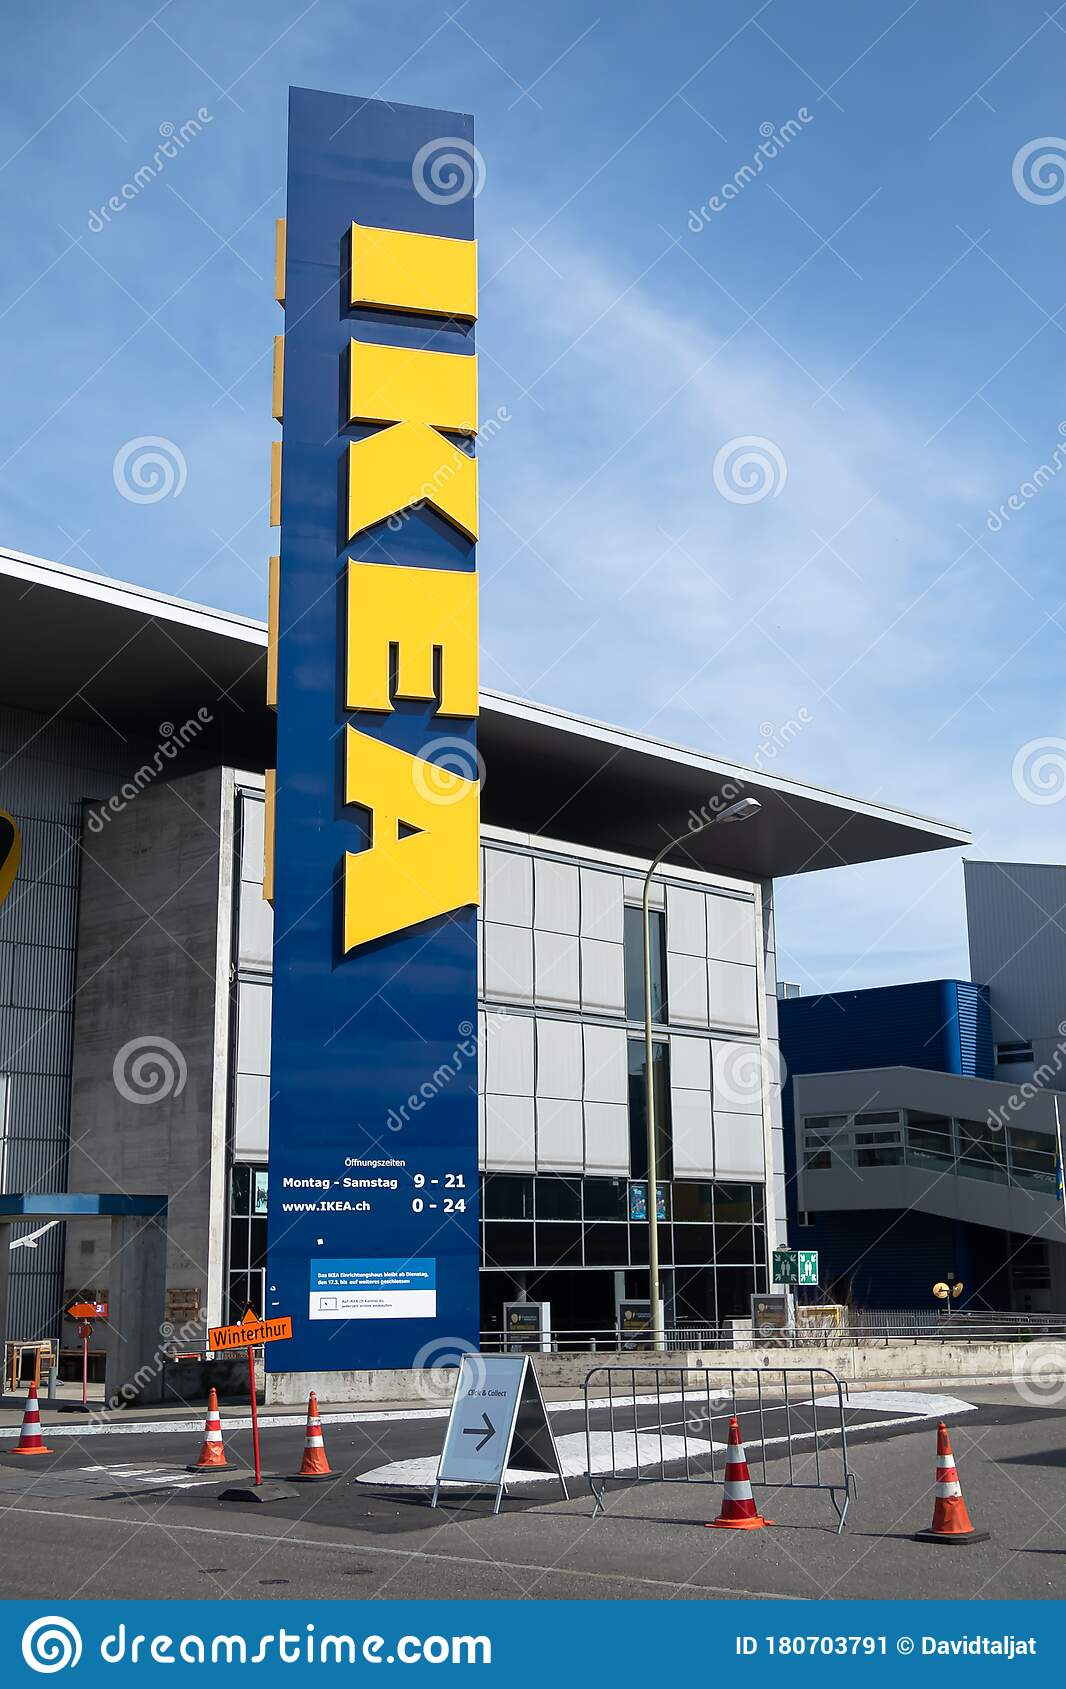 2 442 Ikea Swedish Photos Free Royalty Free Stock Photos From Dreamstime